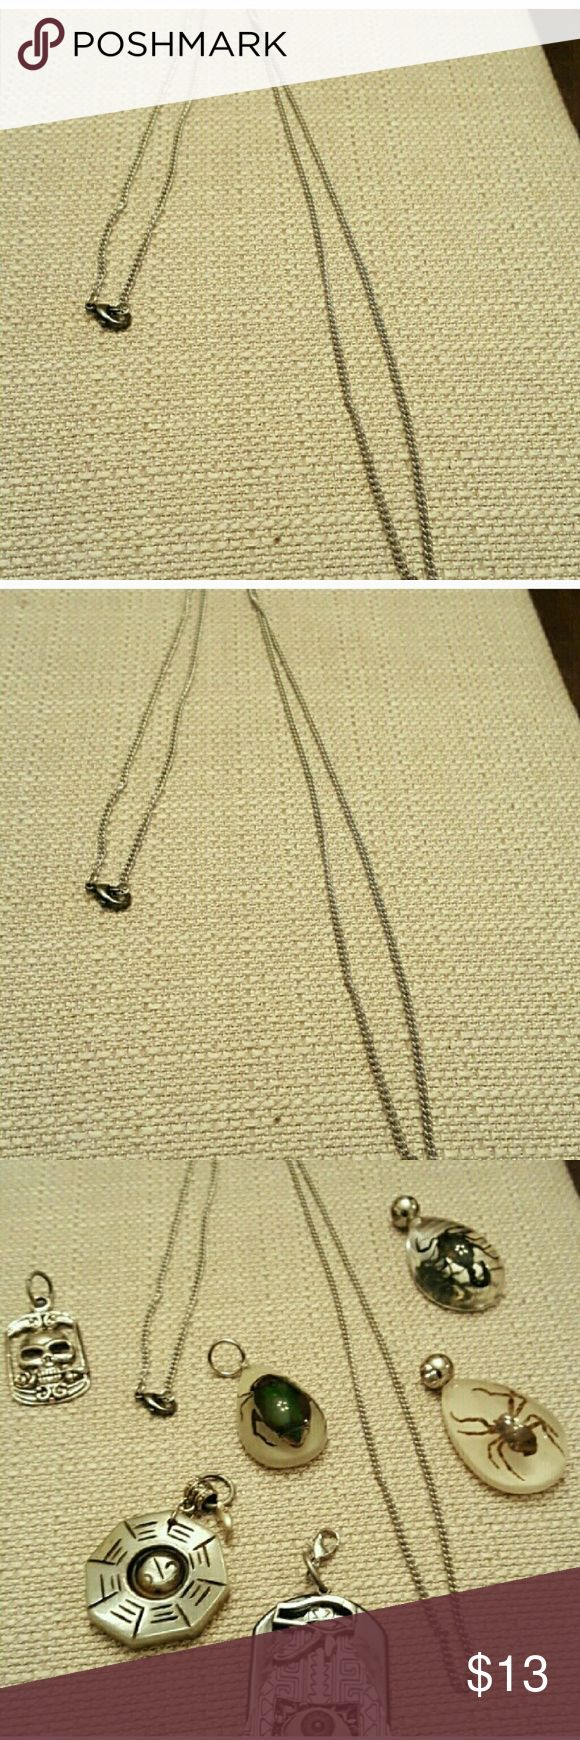 STAINLESS STEEL CHAIN 30 INCHES IN LENGTH Stainless steel Jewelry Necklaces